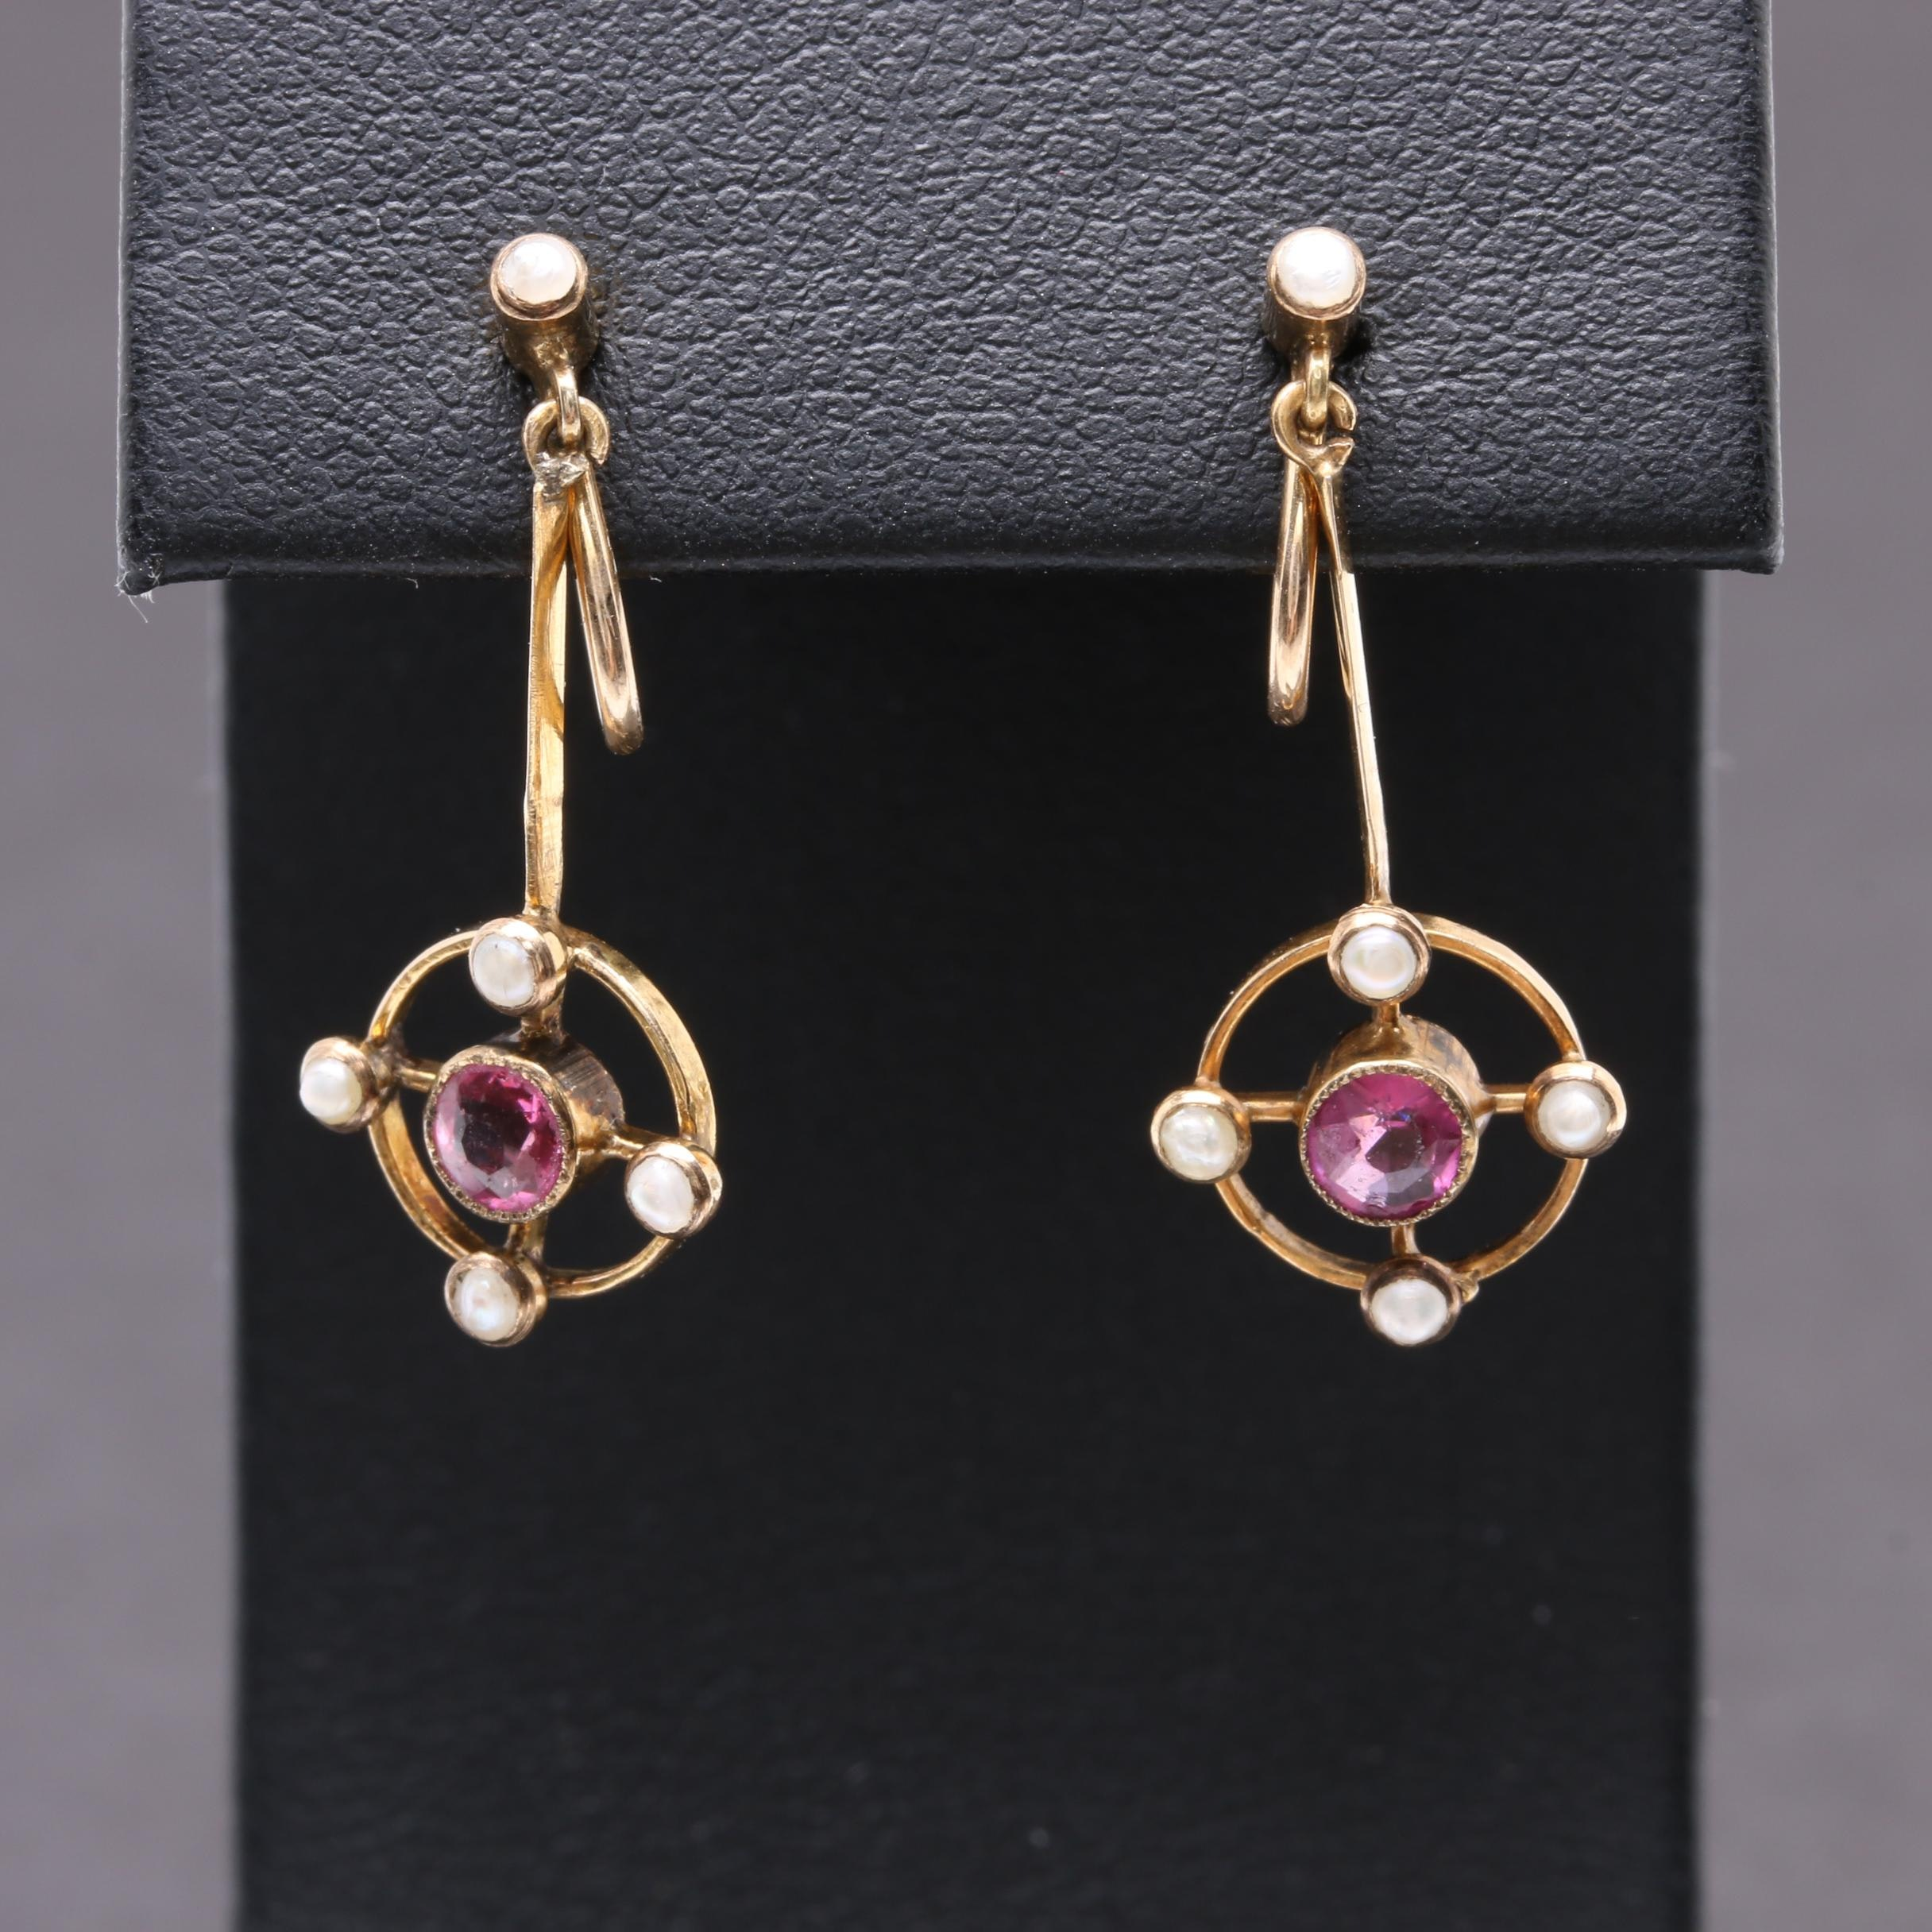 10K Yellow Gold Glass and Garnet Doublet and Seed Pearl Earrings